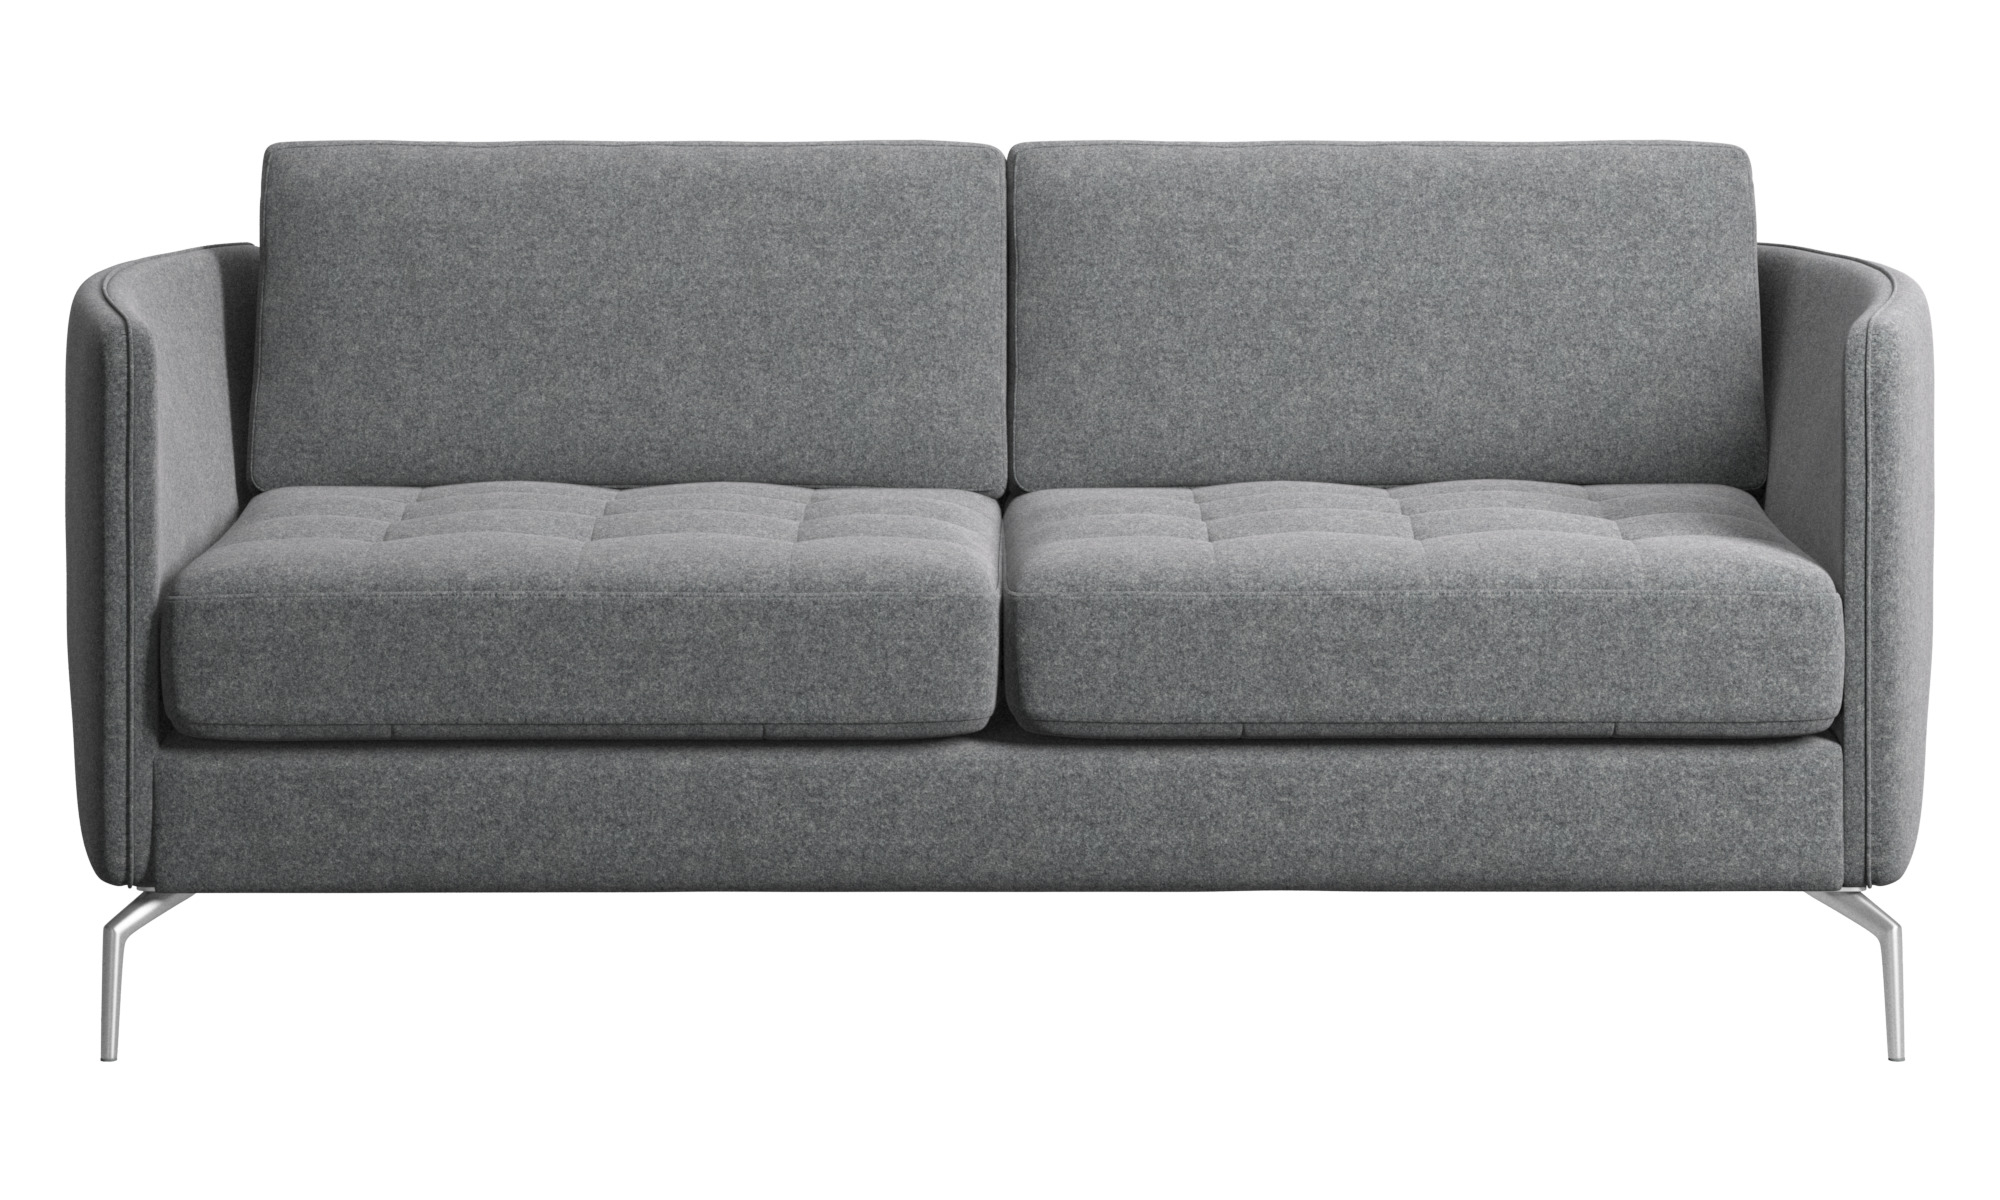 2018 Tufted Blue Suede 3 Seat Sofa Loveseat Blue Couch Blue Pertaining To 3pc Polyfiber Sectional Sofas With Nail Head Trim Blue/gray (View 5 of 20)